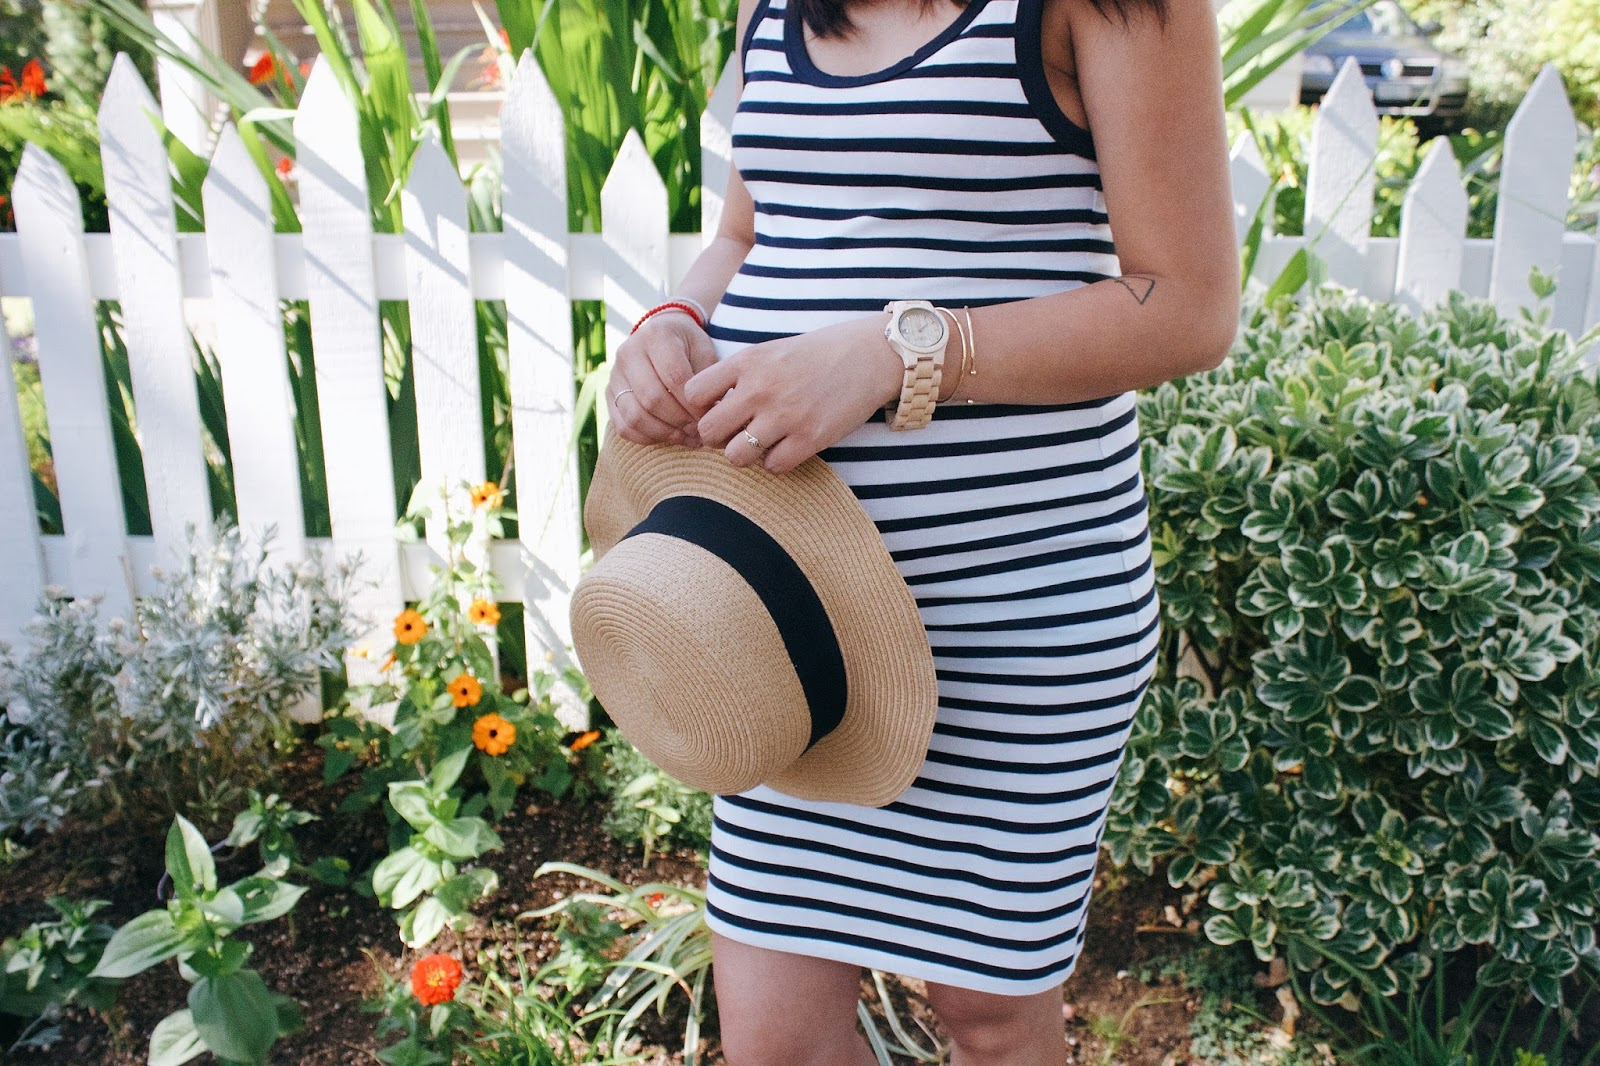 wood watches, jord wood watch, summer fashion, unique gifts, women's watches, pregnancy style, portland fashion blogger, blue and white striped dress, the p. town girls